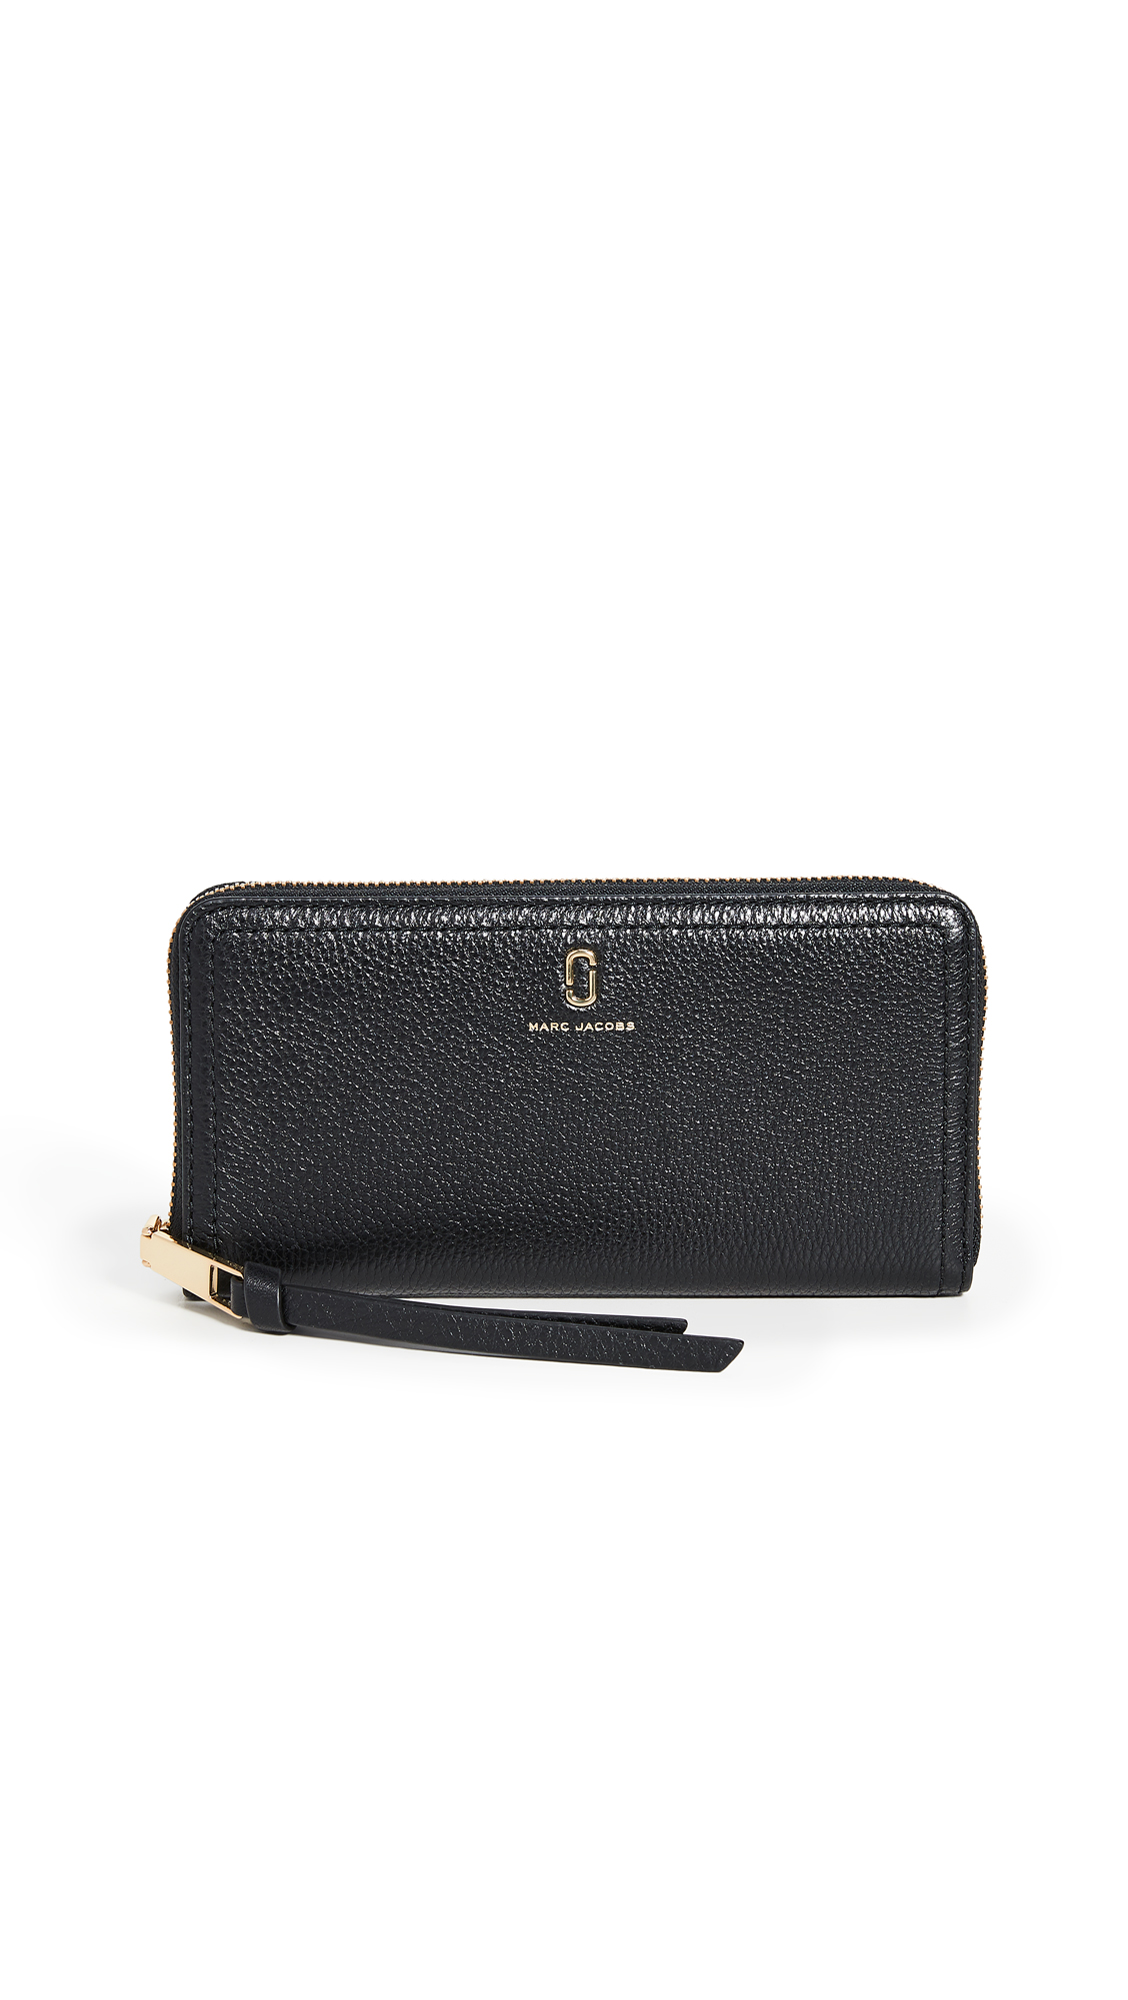 The Marc Jacobs Standard Continental Wallet